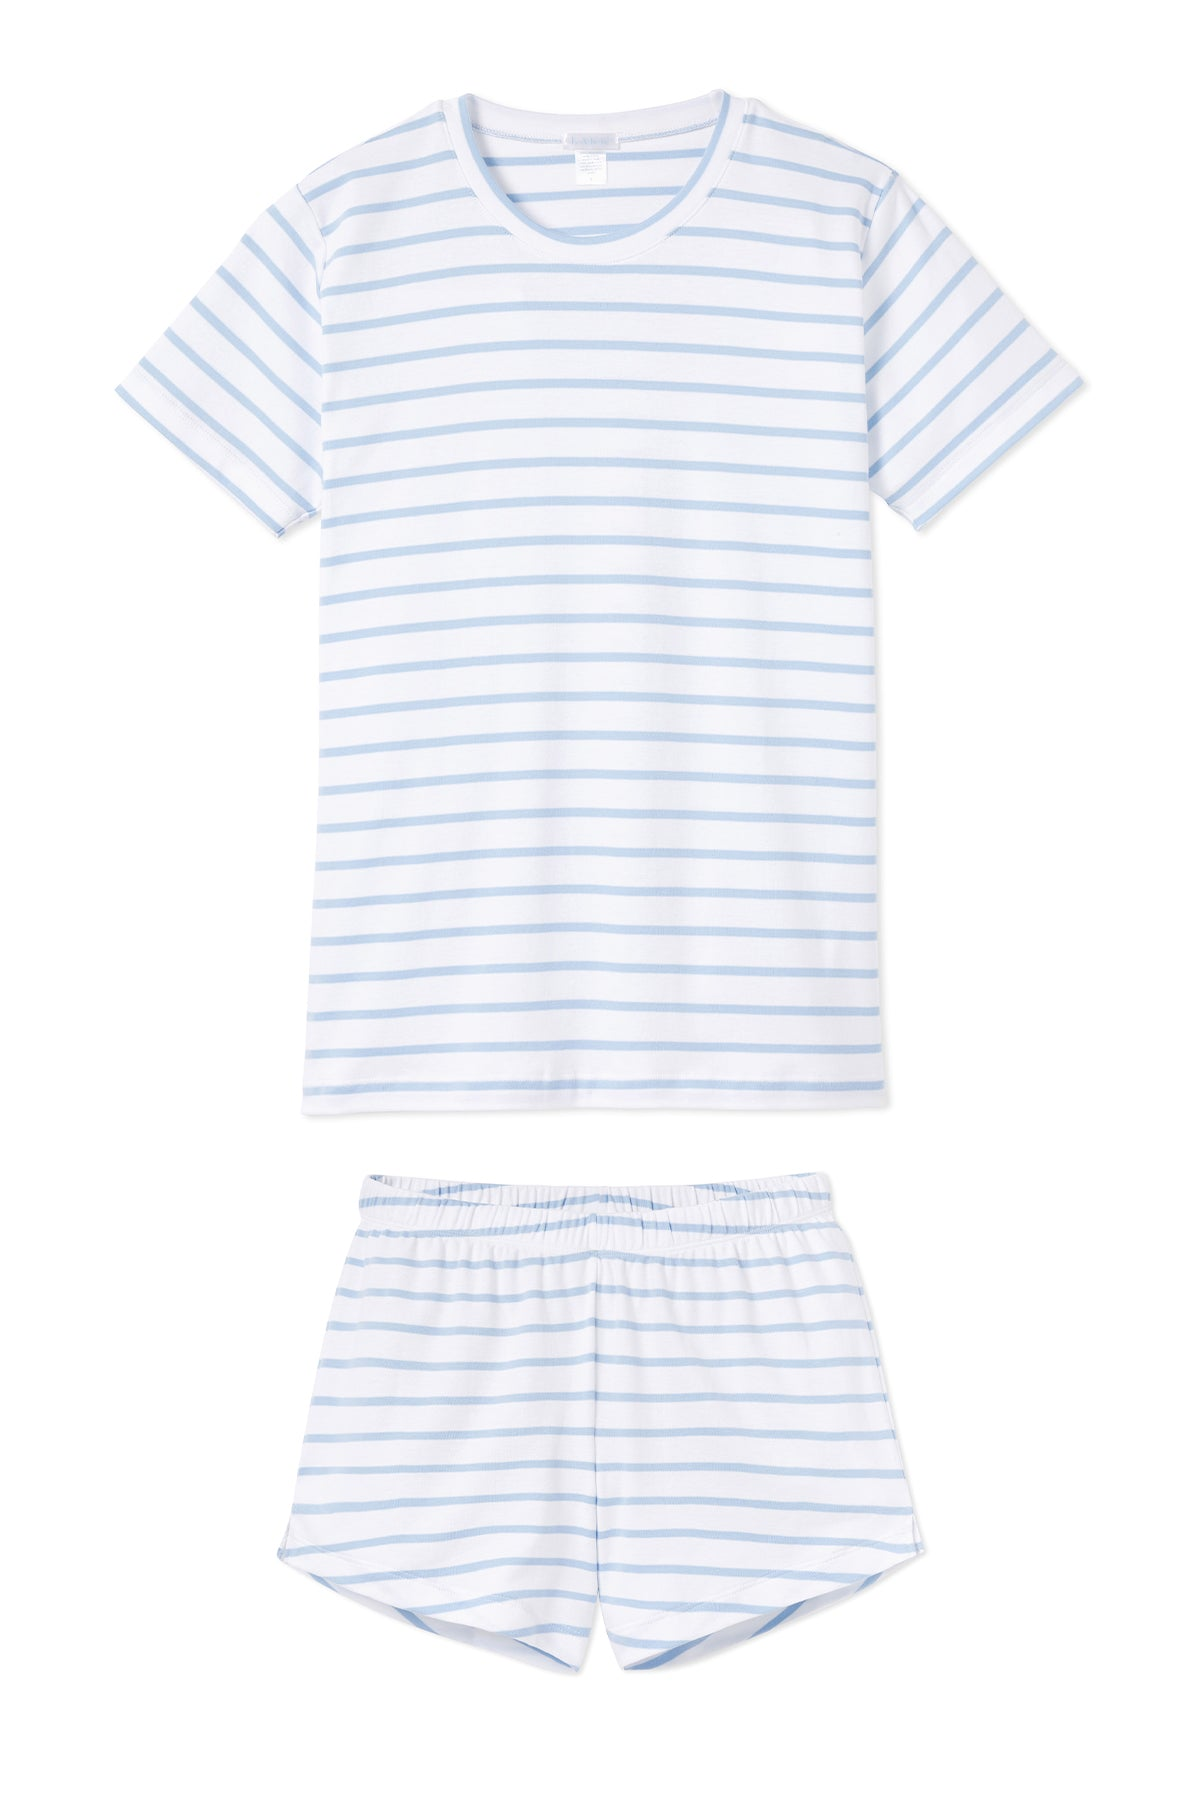 Pima Weekend Shorts Set in Cerulean